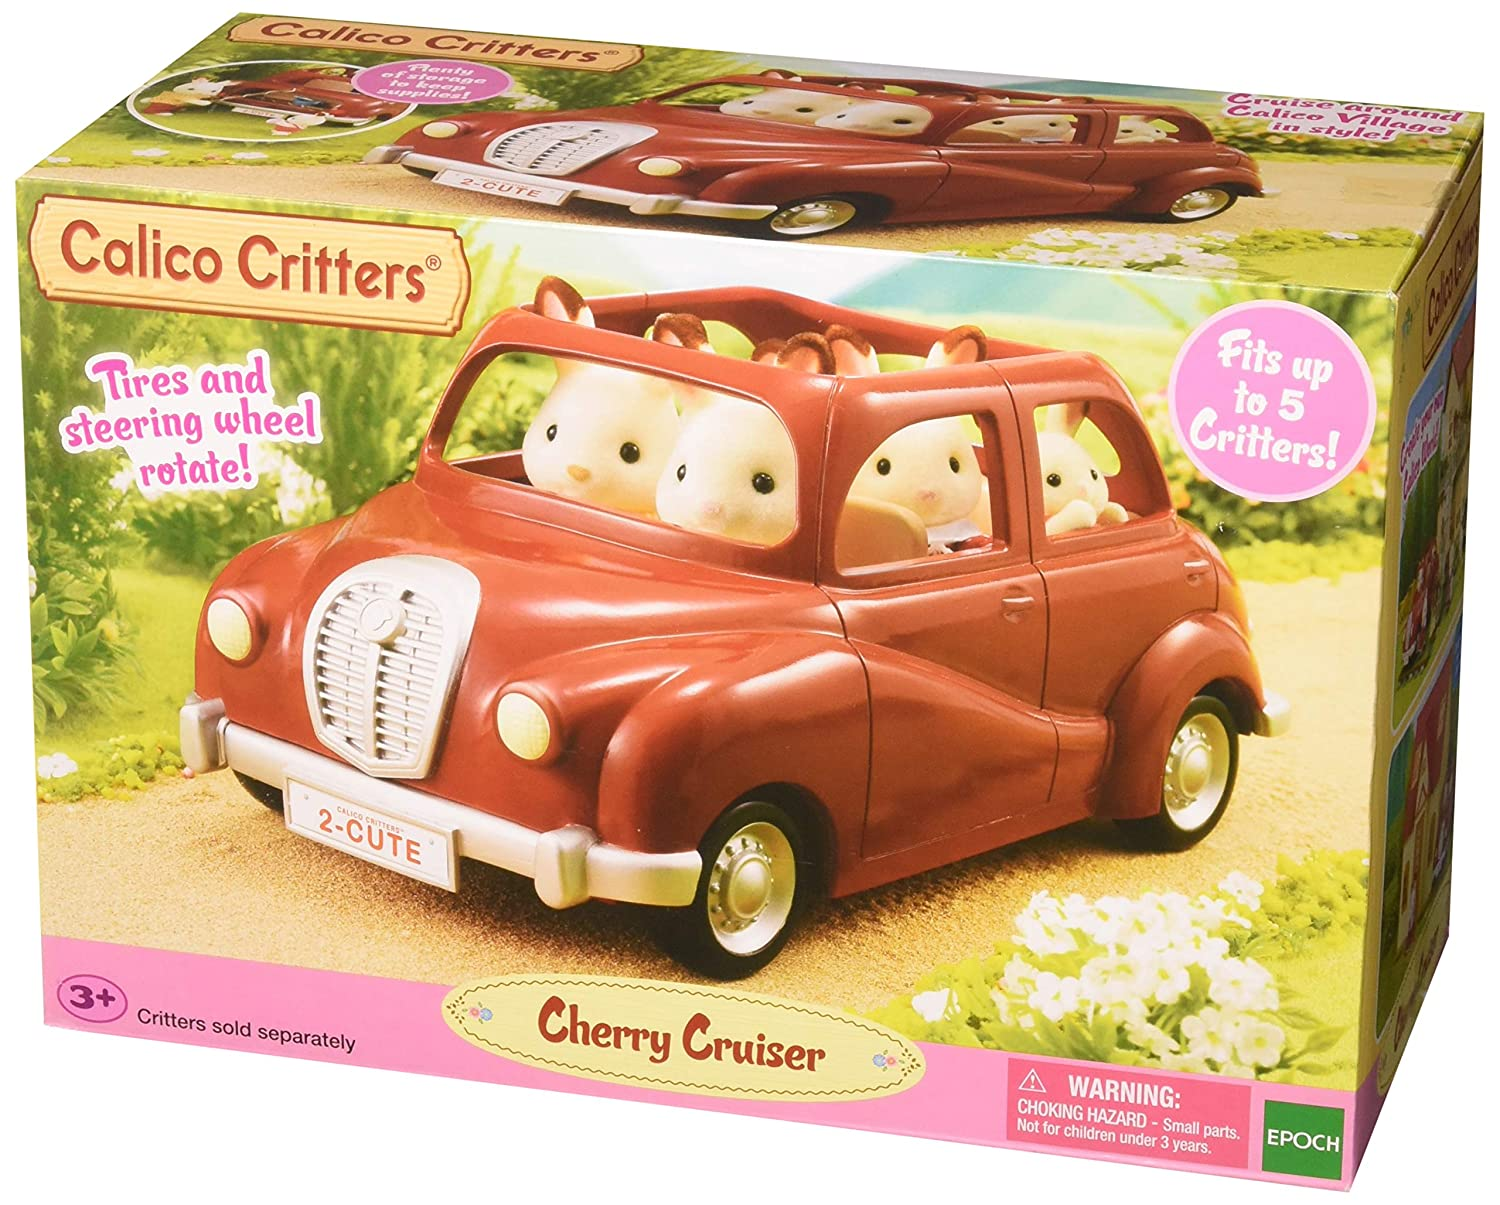 Calico Critters Cherry Cruiser Car Vehicle Doll